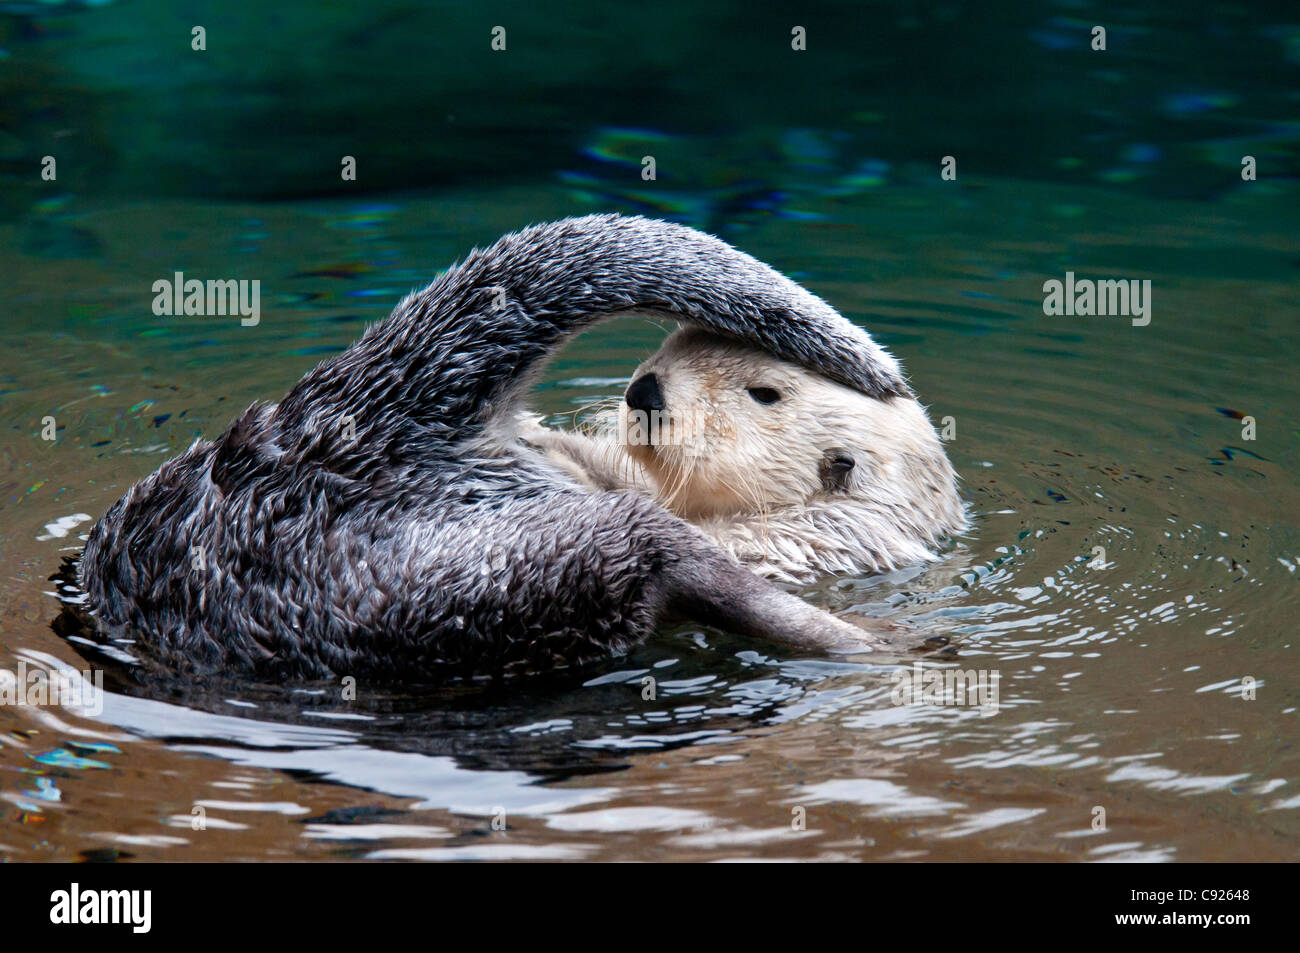 CAPTIVE Close up of a sea otter with its tail touching the top of its head at the Point Defiance Zoo, Tacoma, Washington - Stock Image